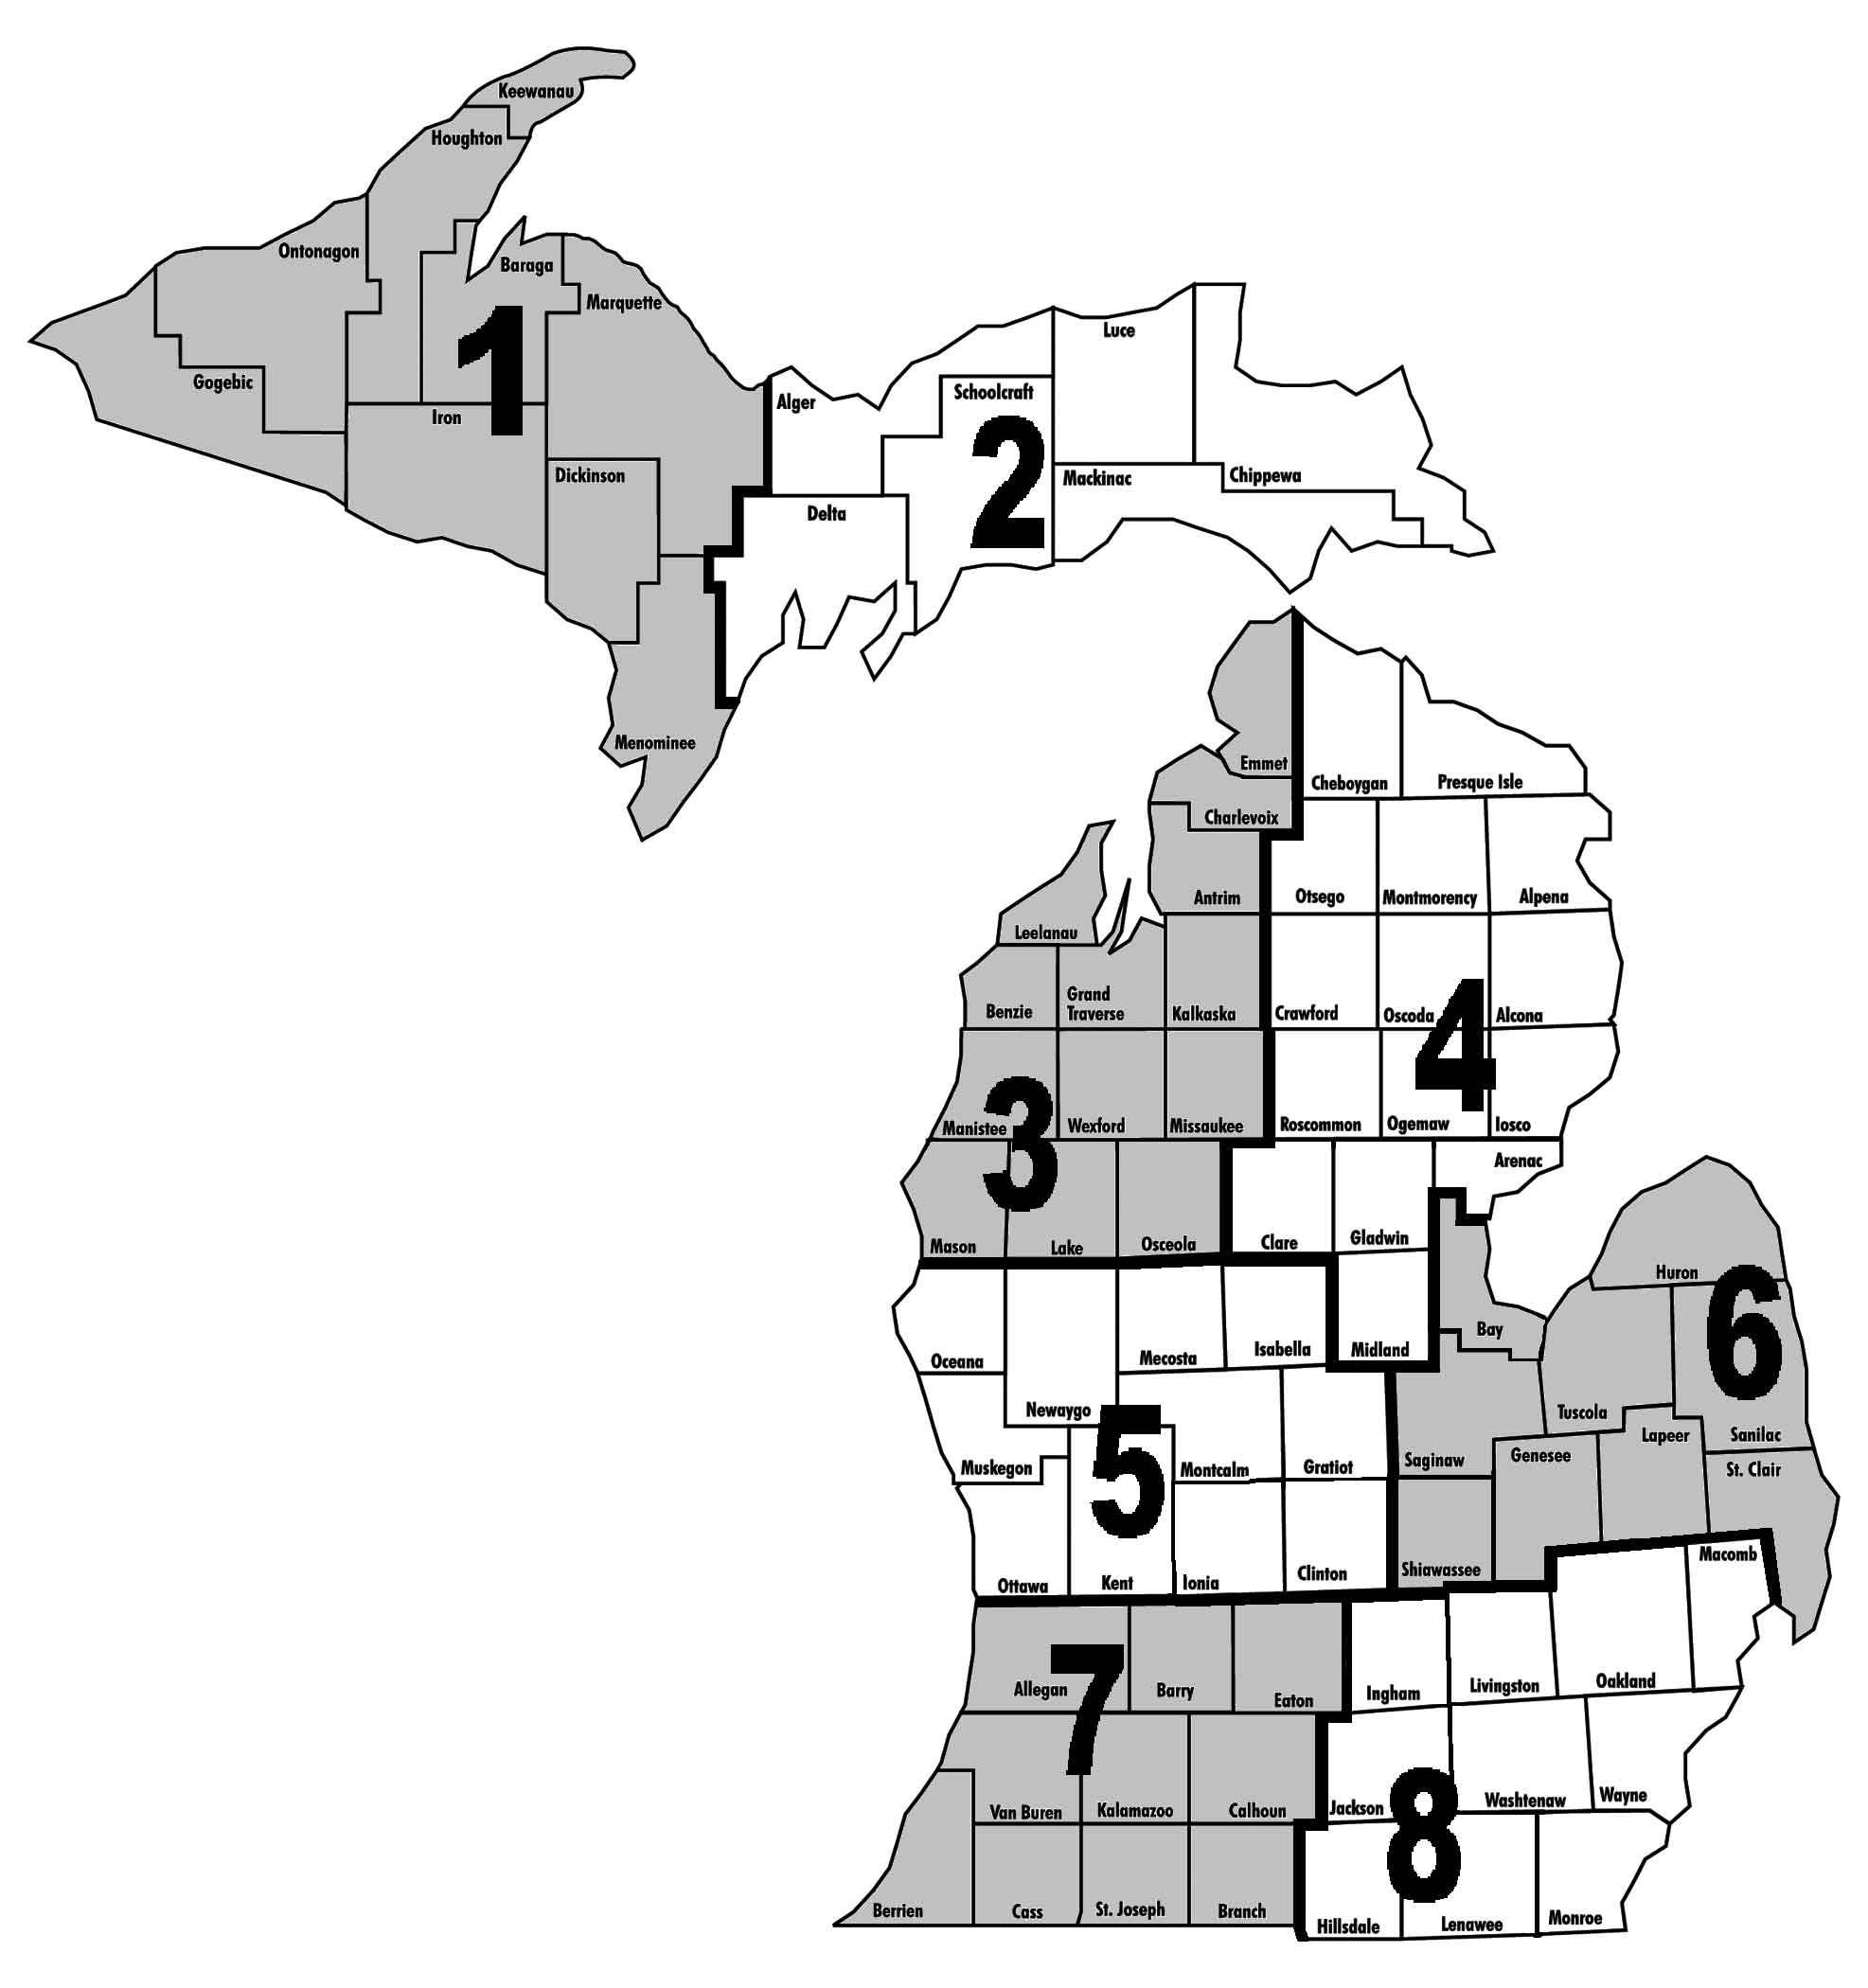 District 2: Vacant District 3: Ronald Vanzee, Hayes Township, Charlevoix County  District 4: Kenneth Gauthier, Sanborn Township, Alpena County